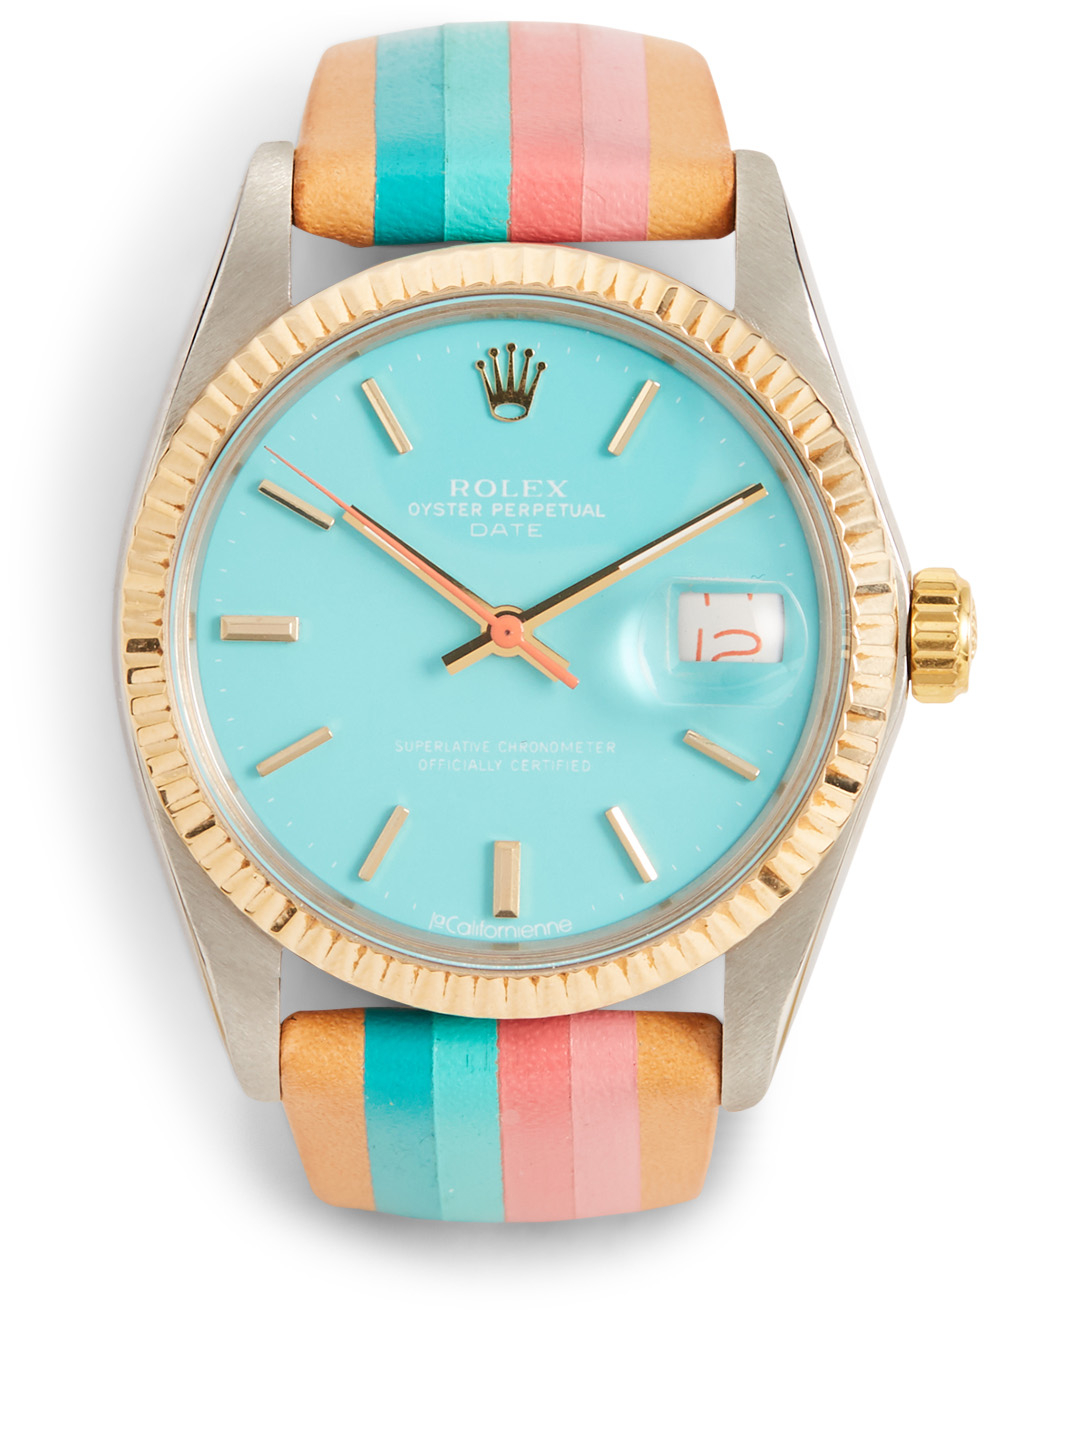 LA CALIFORNIENNE Rolex Oyster Perpetual Date Two-Tone Leather Strap Watch Women's Blue